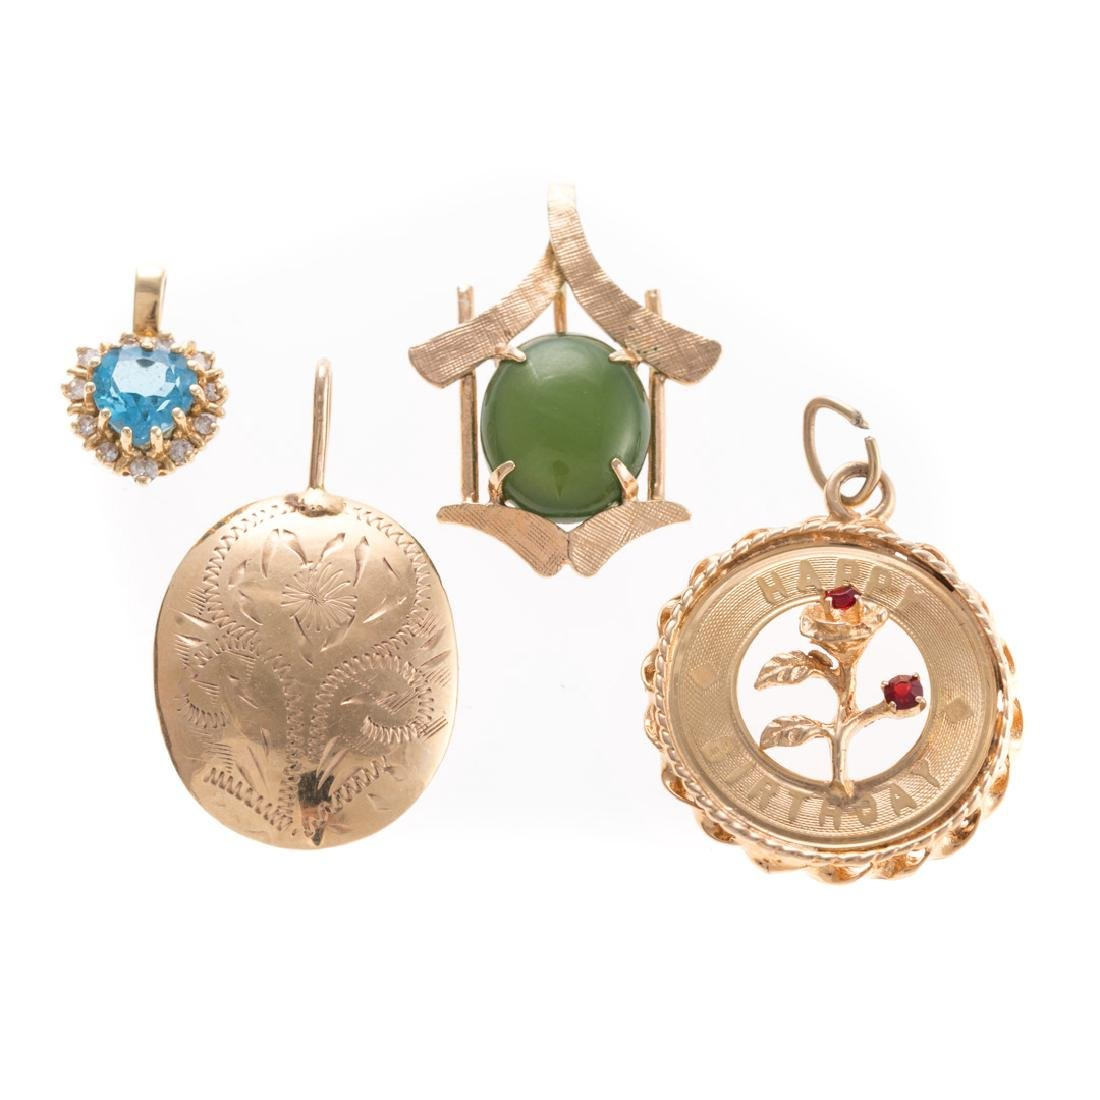 A Set of Four Gold Charms